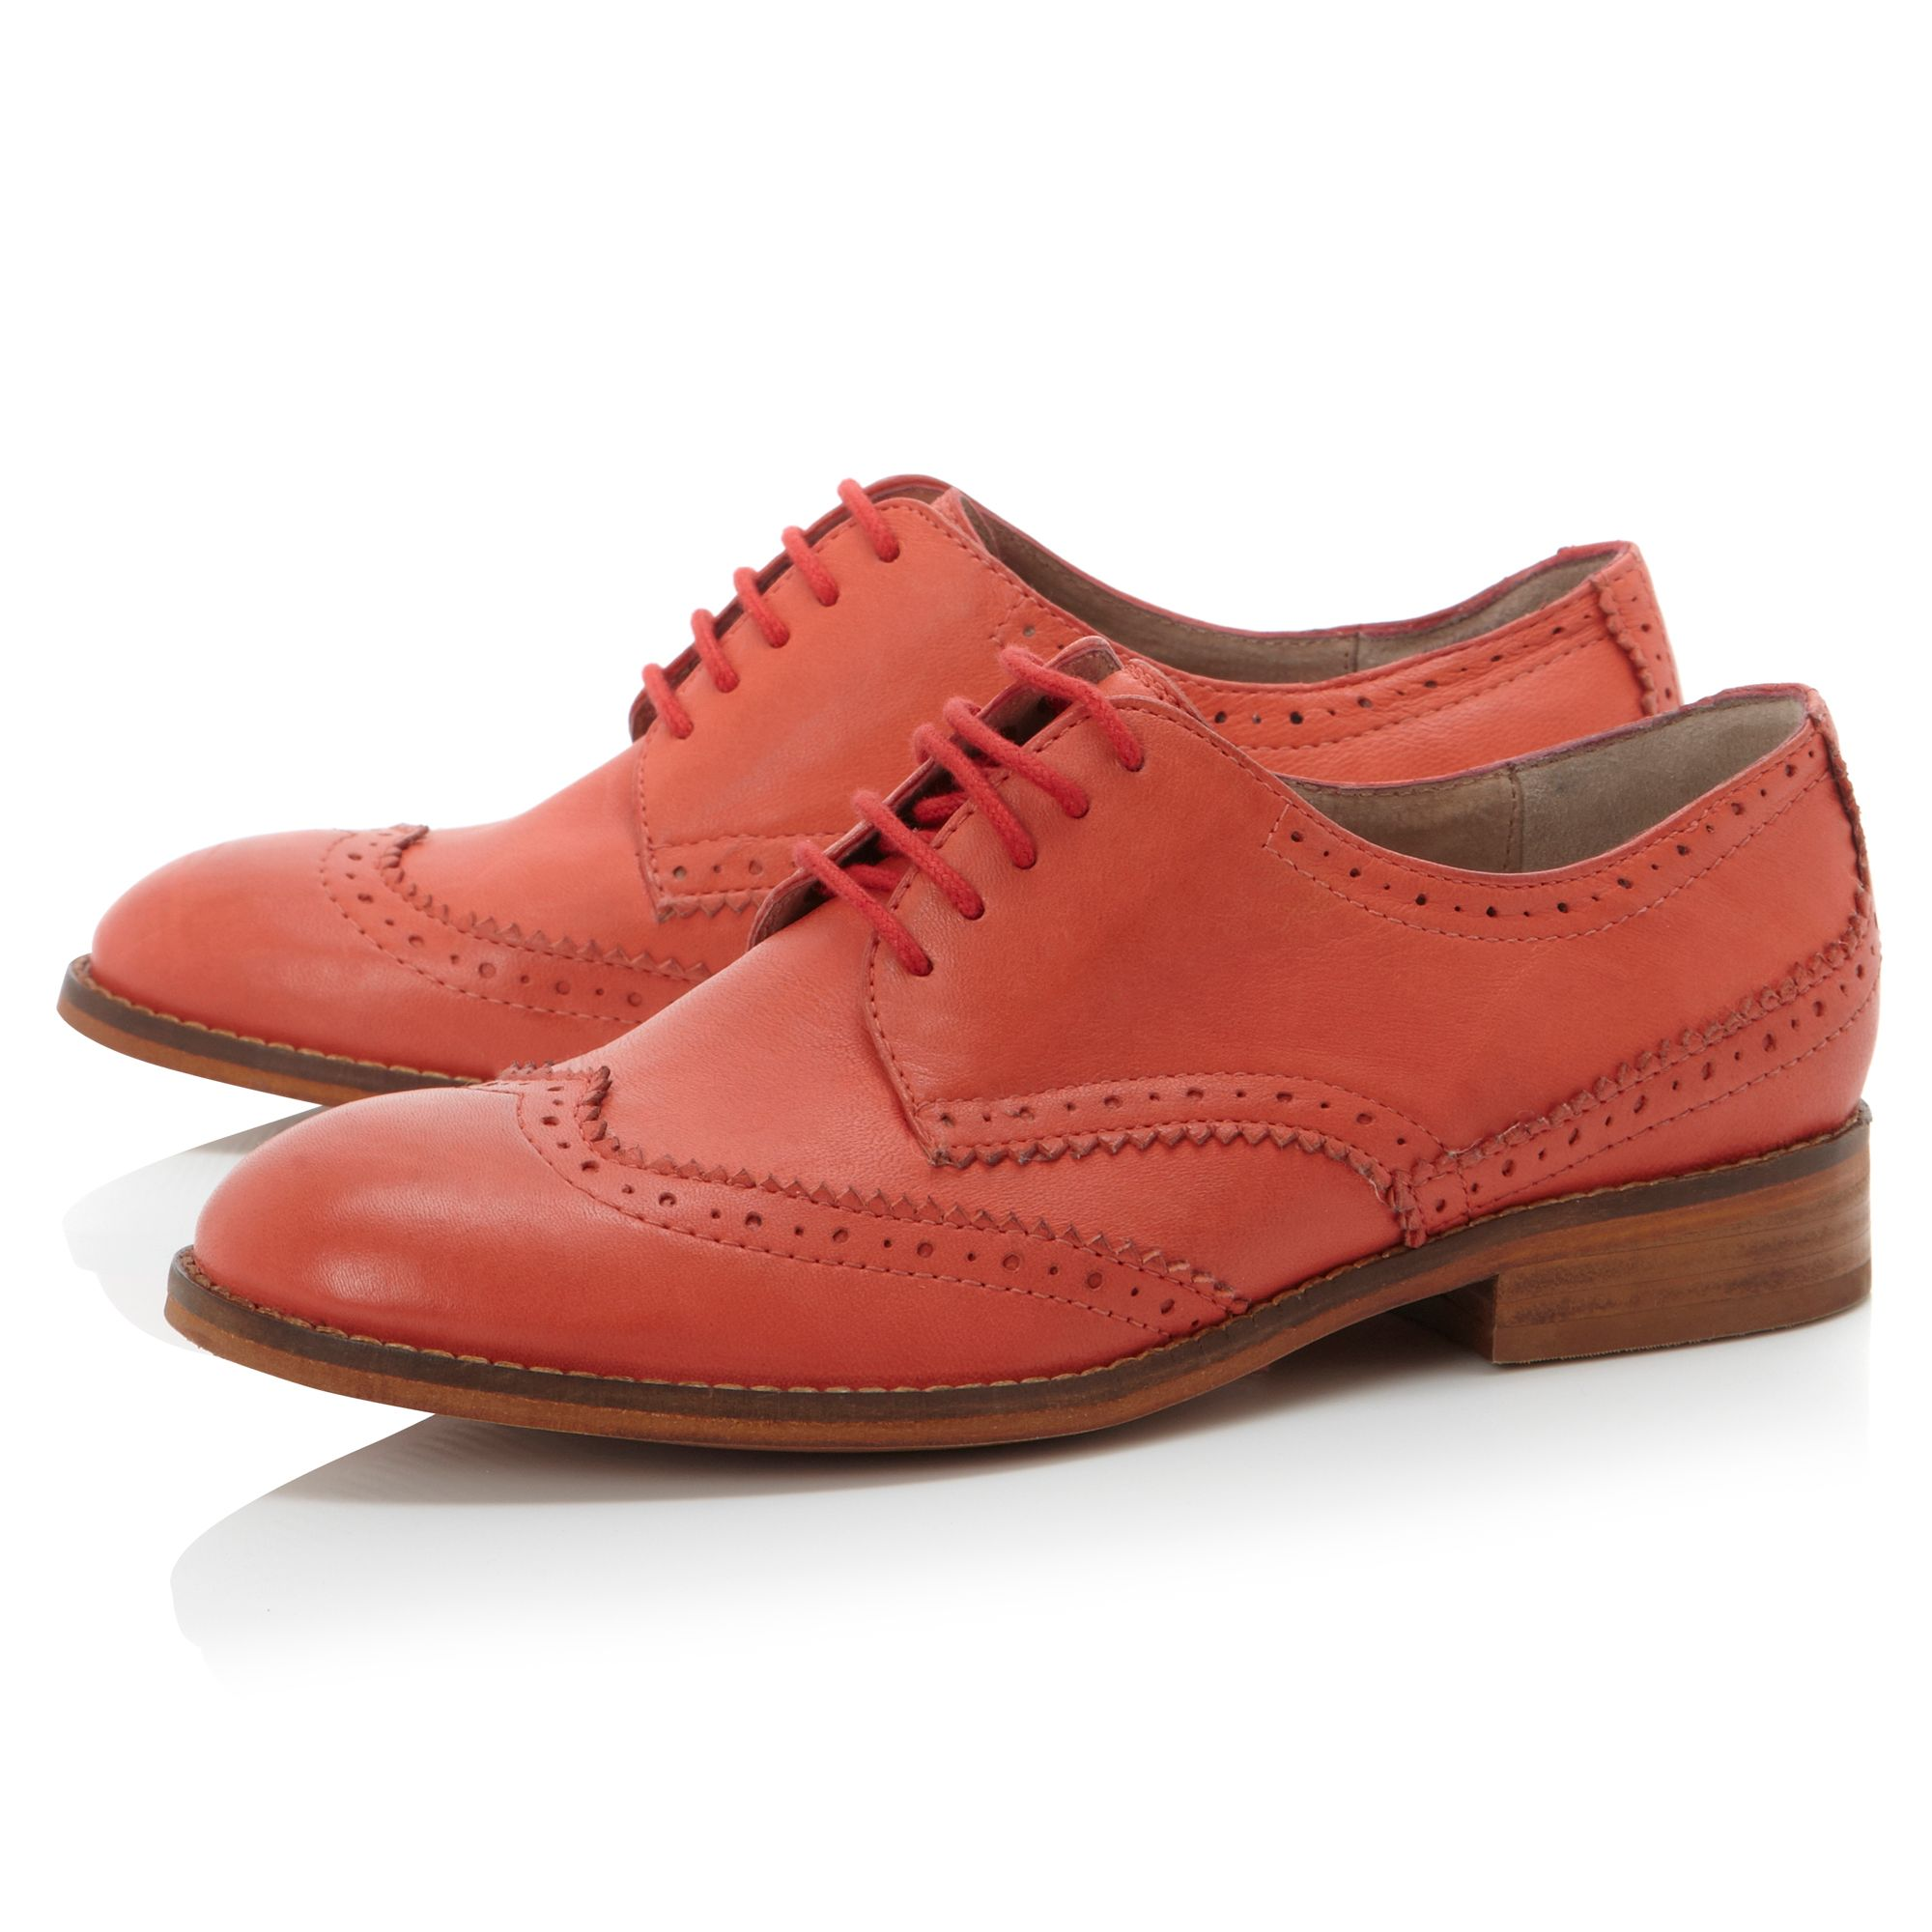 Lunda soft lace up brogue shoes